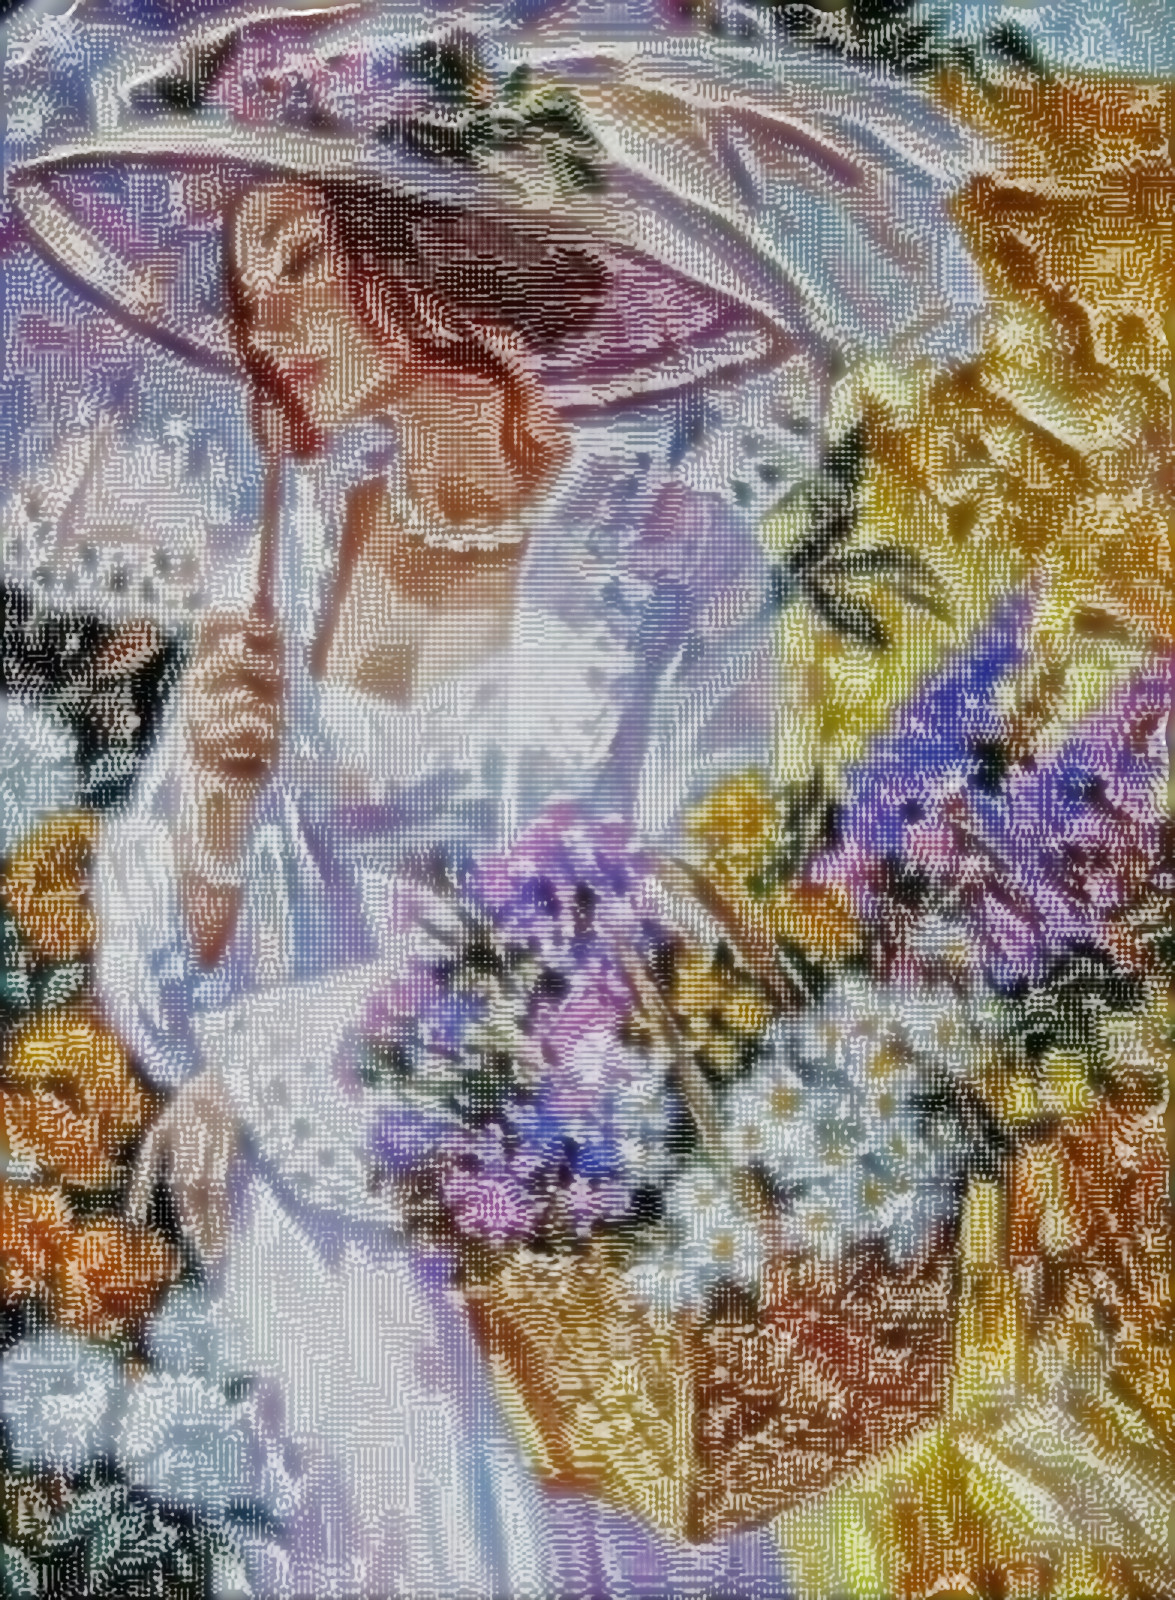 woman with flowers-wireframemaplyle-3,40,1,0-screen 75 opacity.jpg